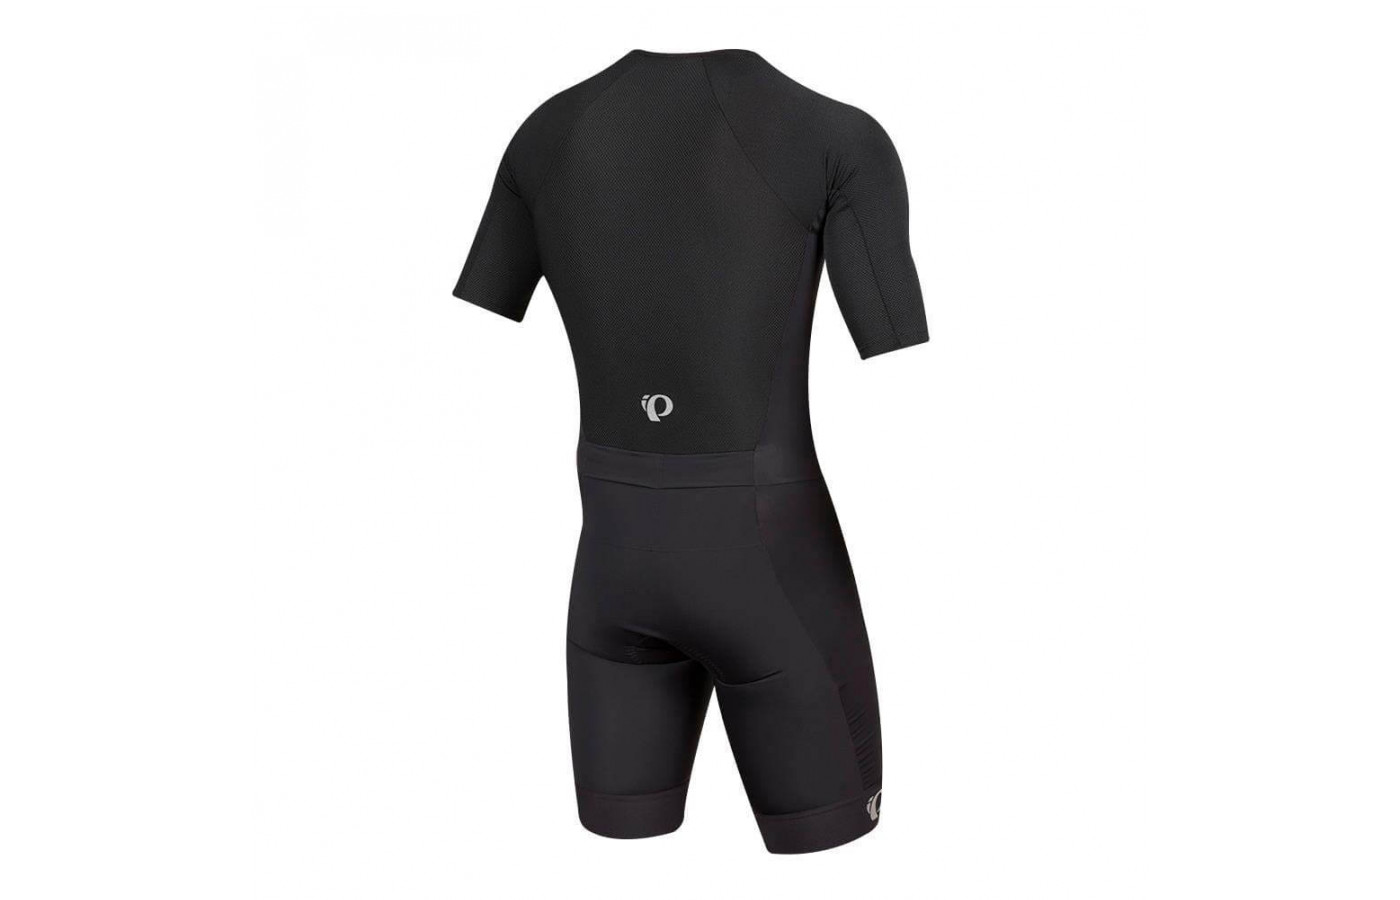 The Elite Tri Speed Suit features two back pockets